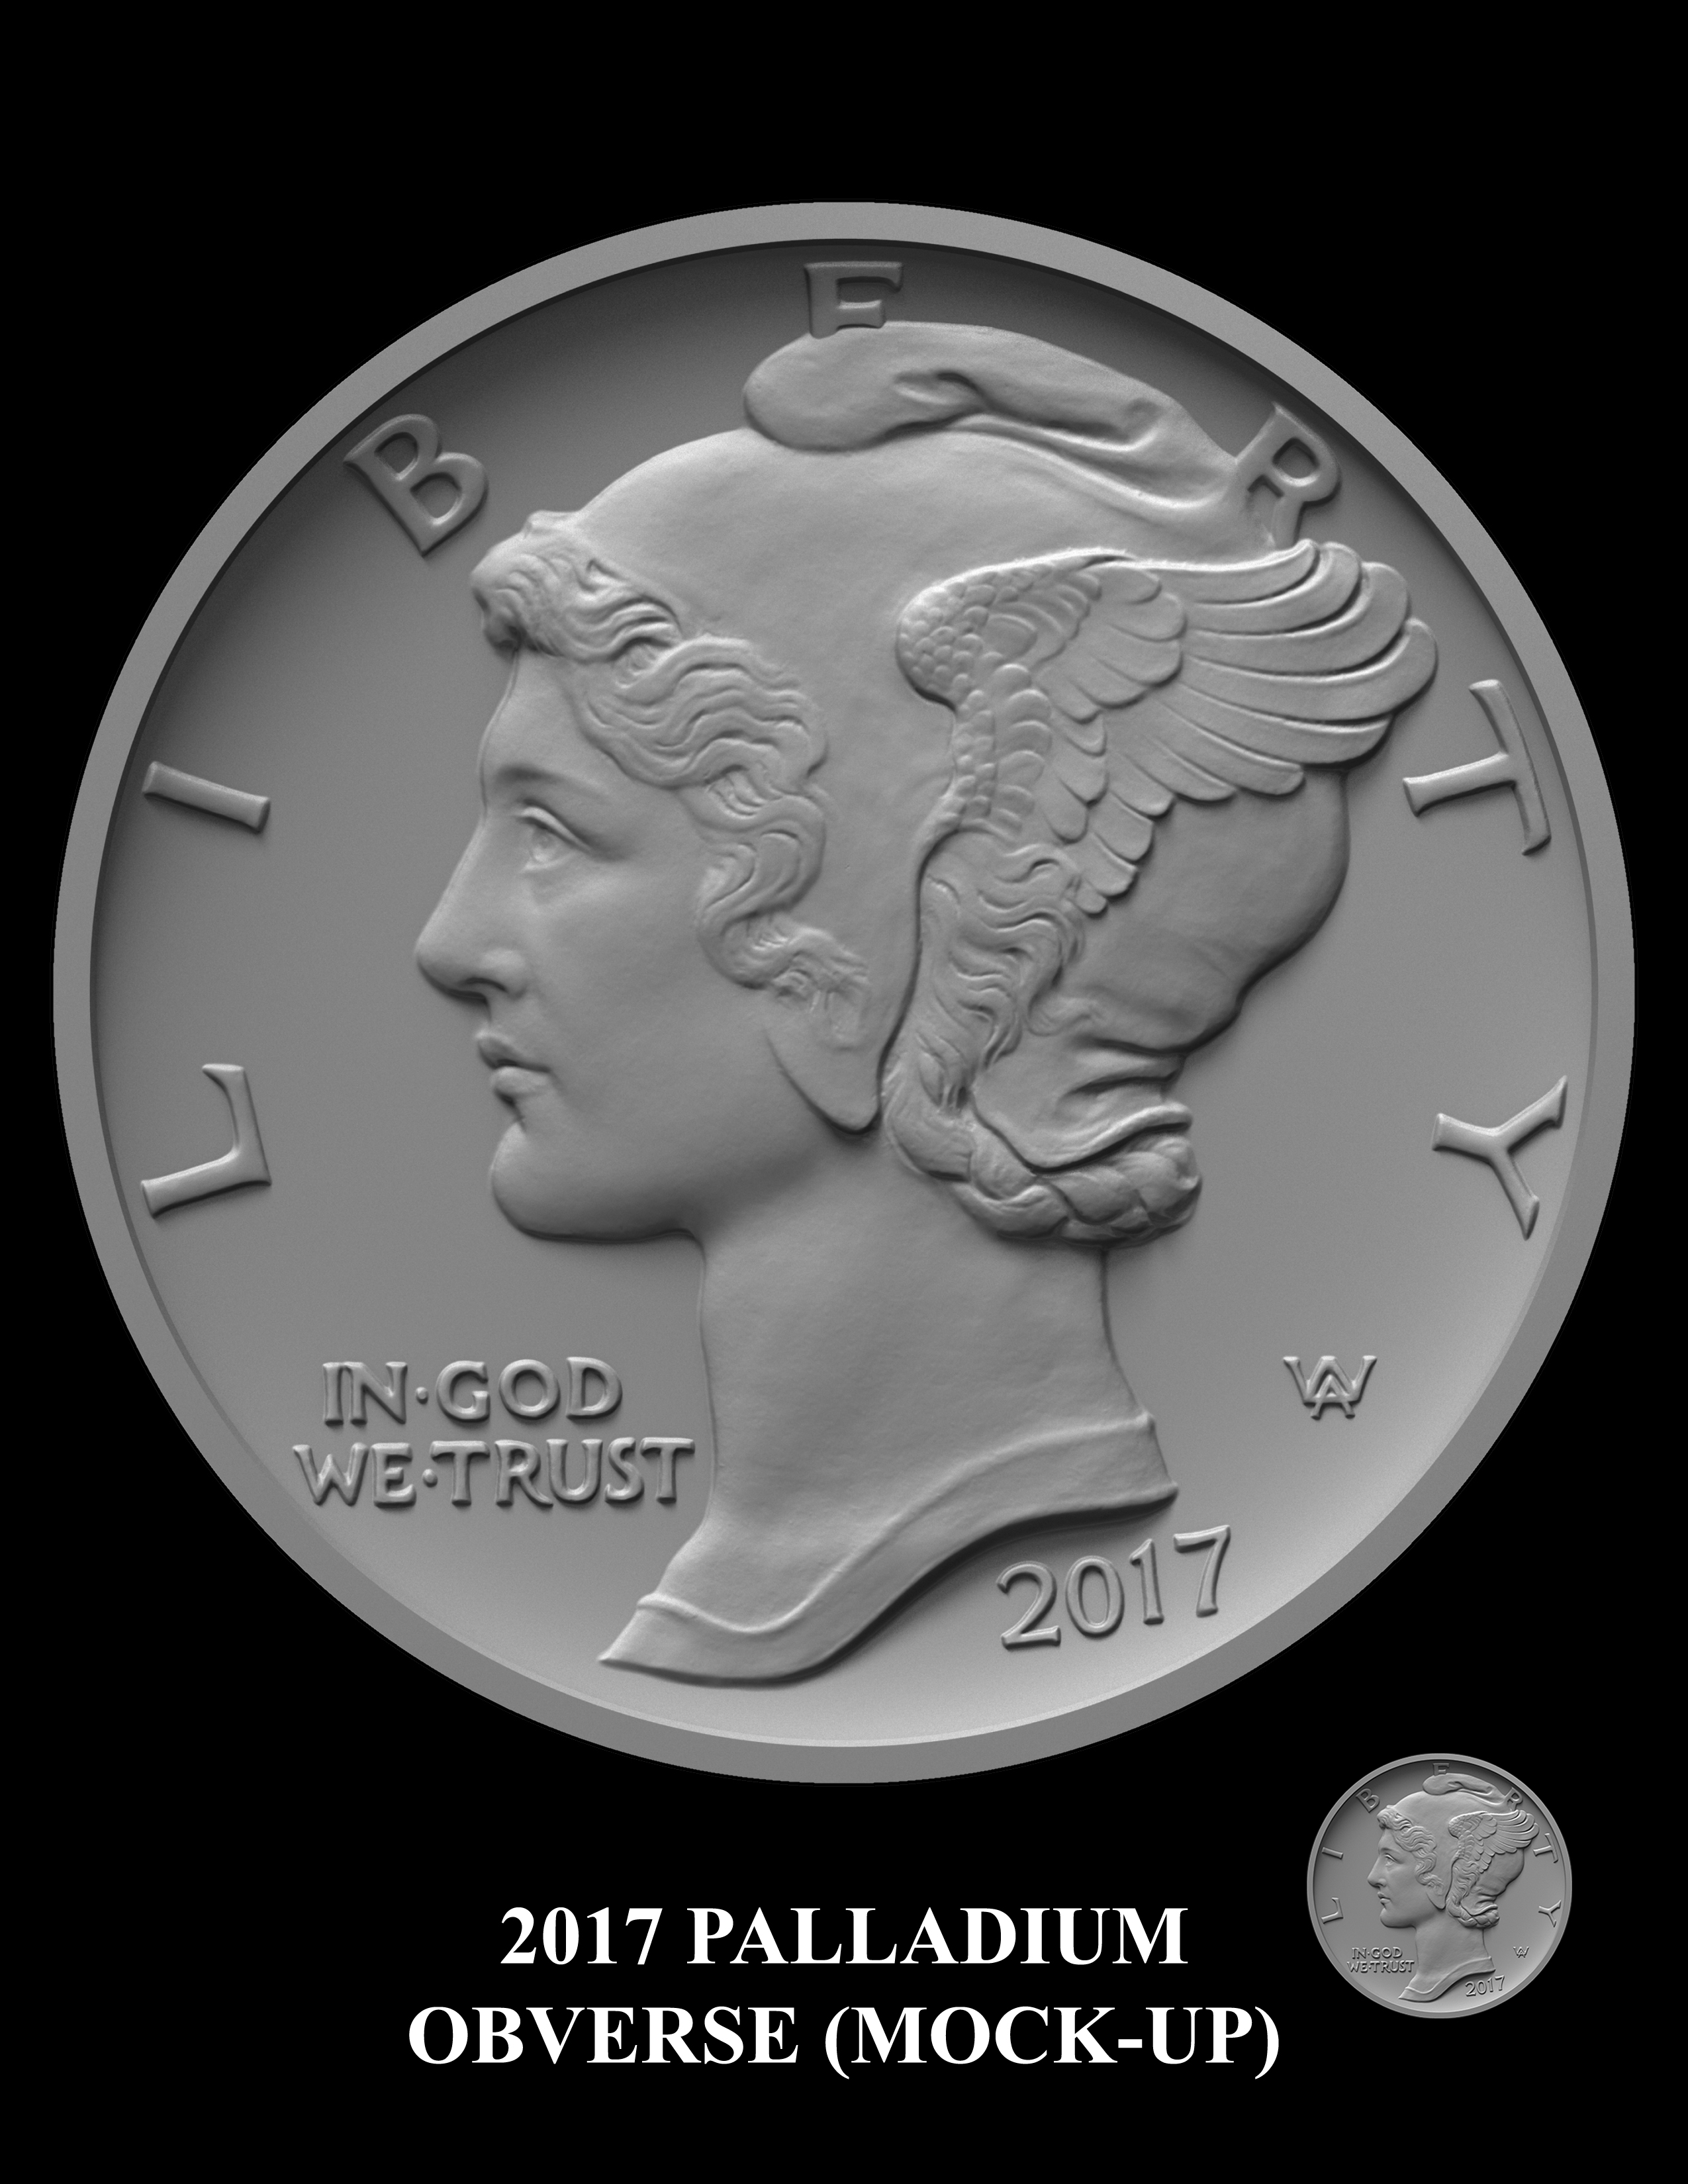 2017-Palladium-Obverse-Mock-up -- 2017 American Eagle Palladium Bullion Coin